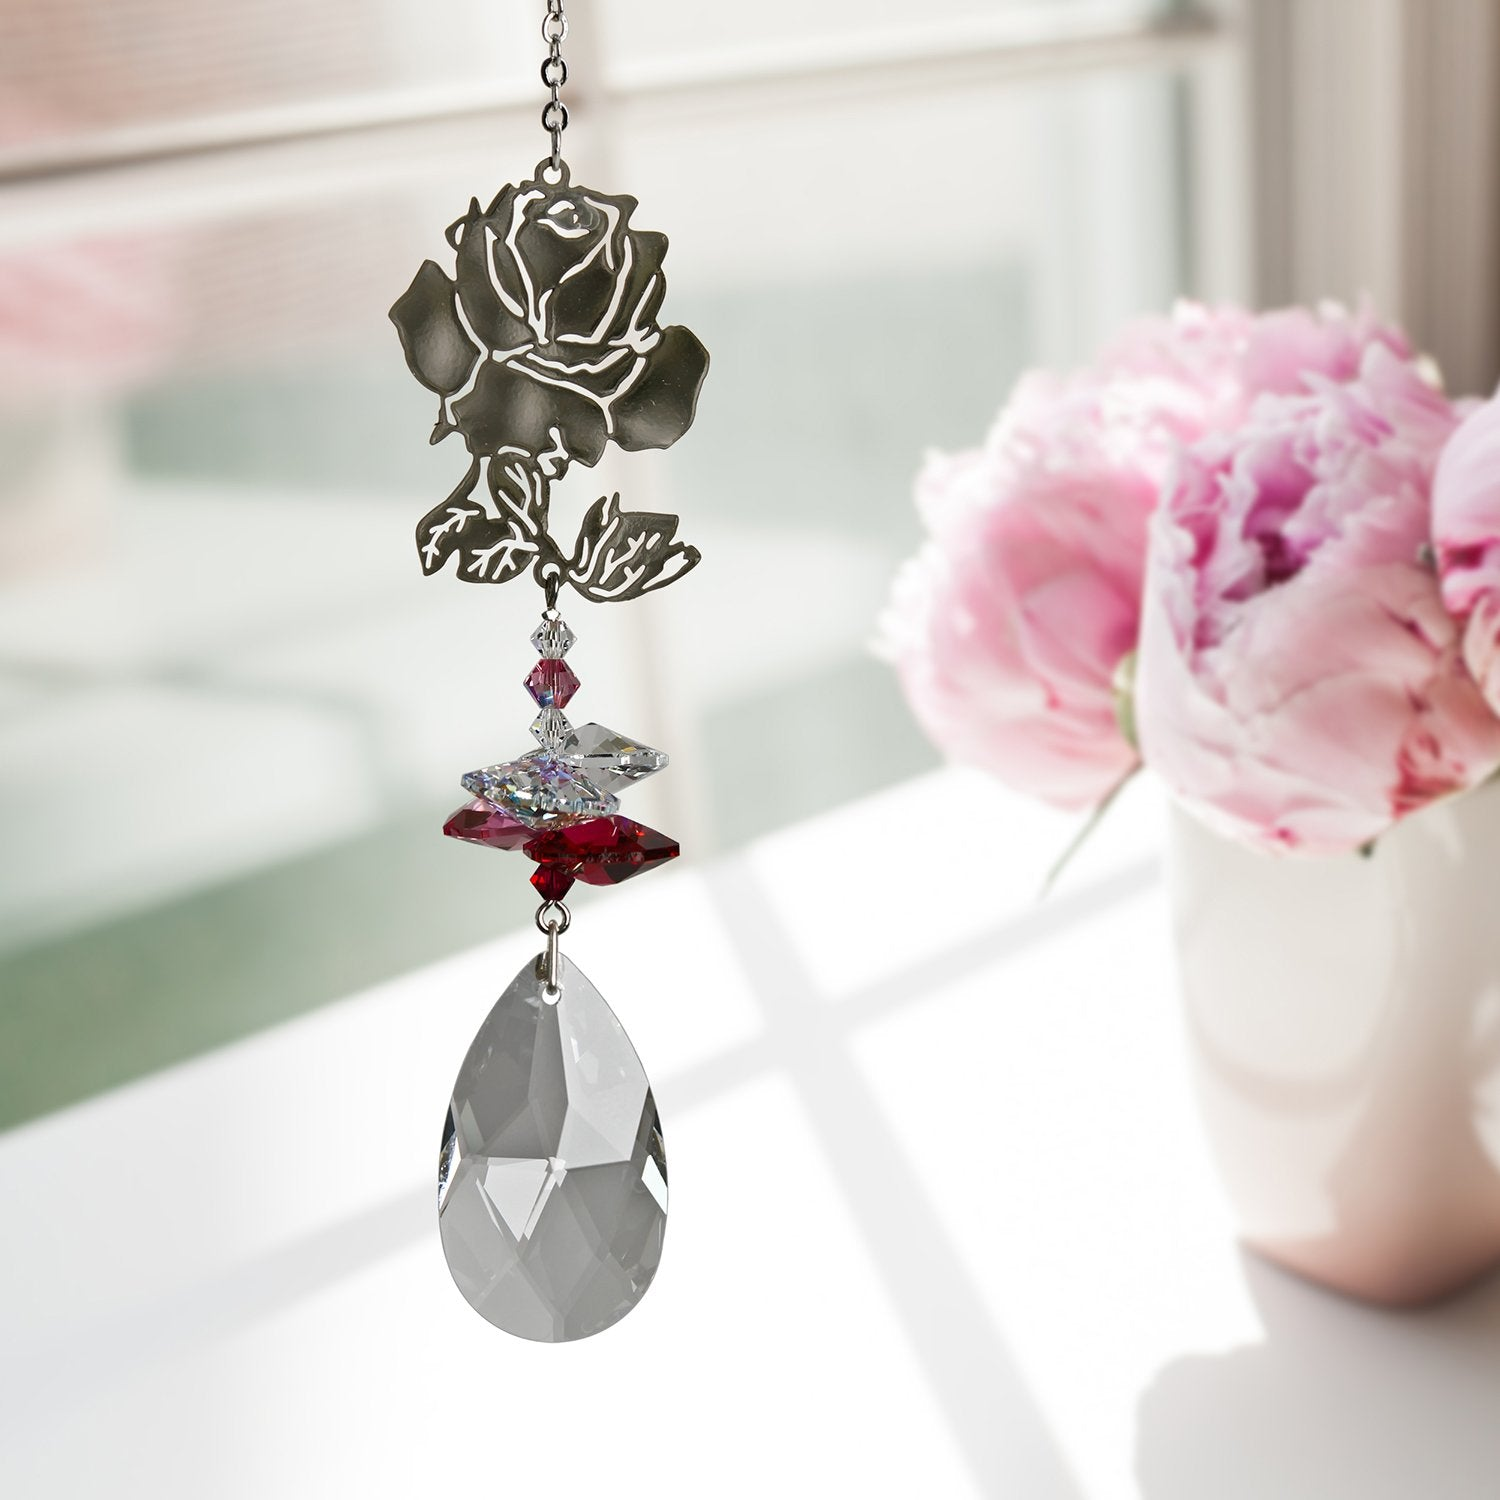 Crystal Fantasy Suncatcher - Rose lifestyle image